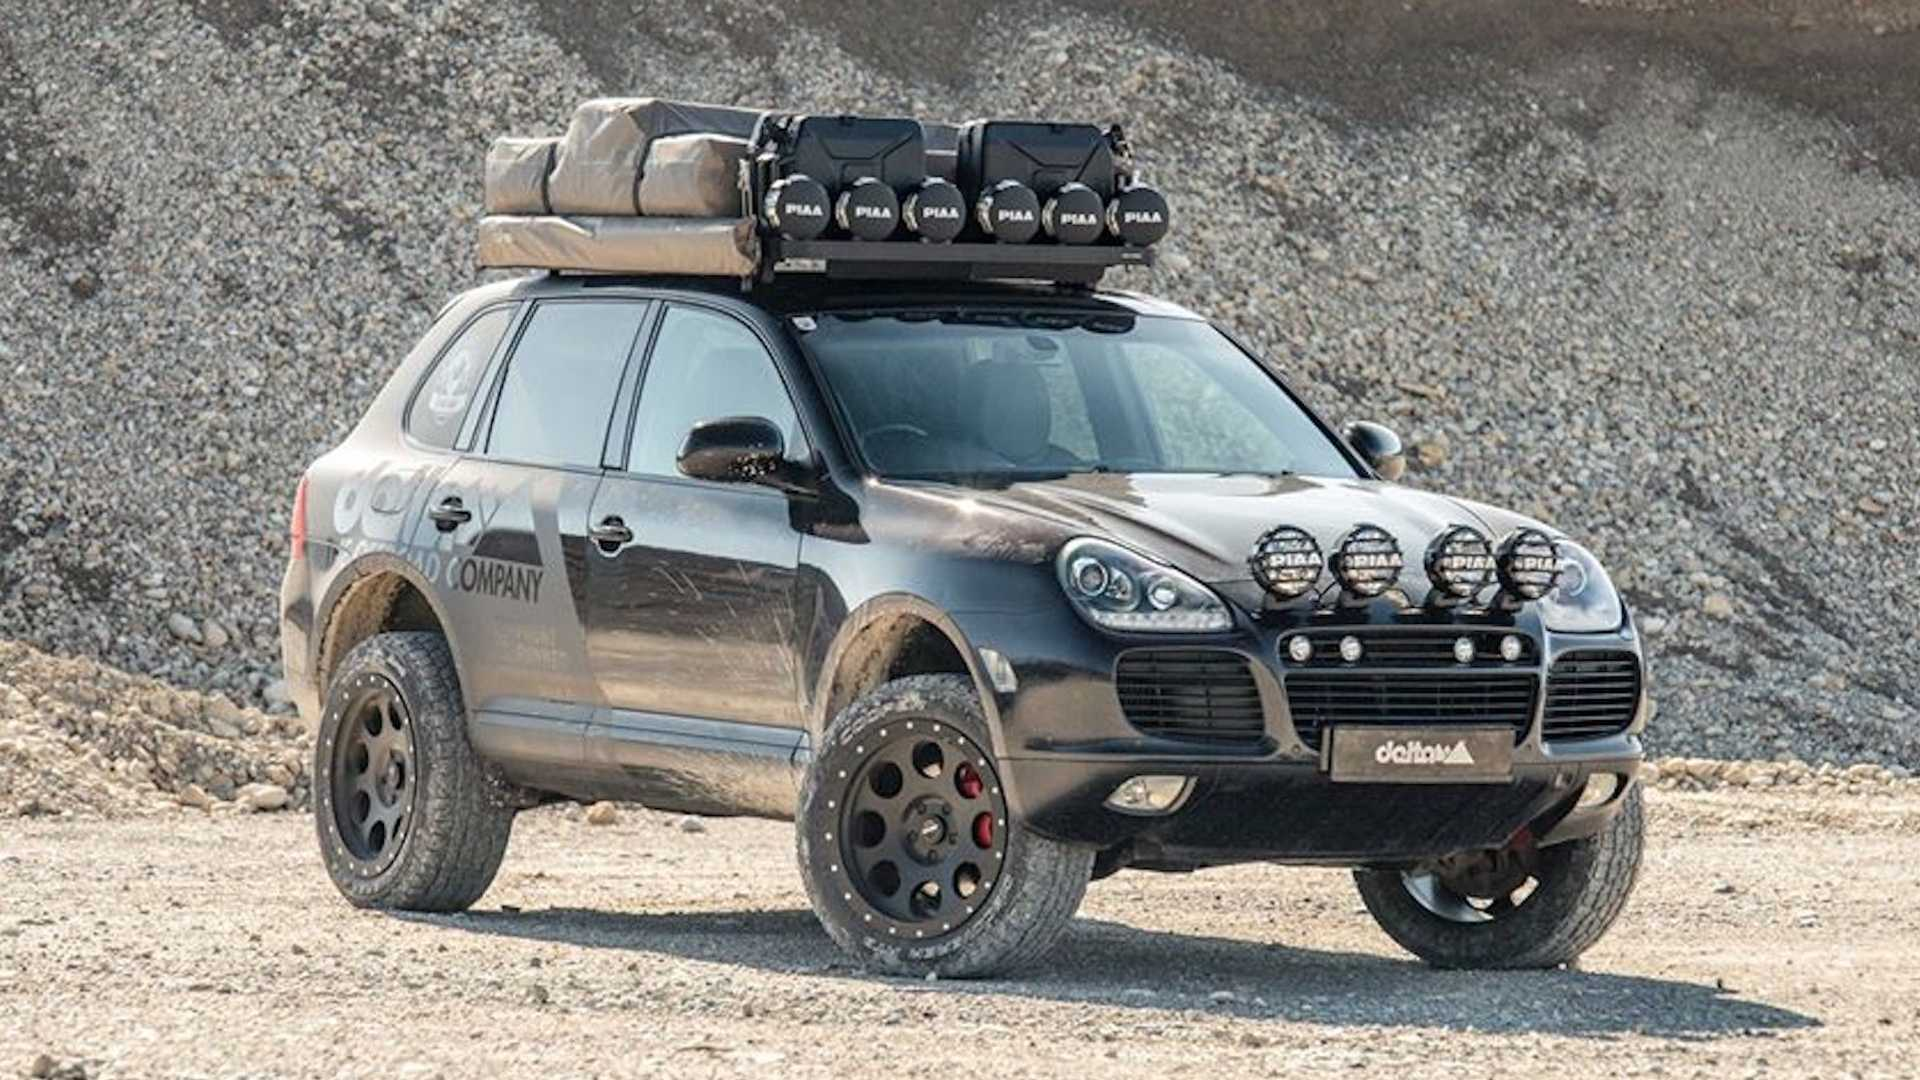 lifted-porsche-cayenne-with-piaa-rally-lights-1